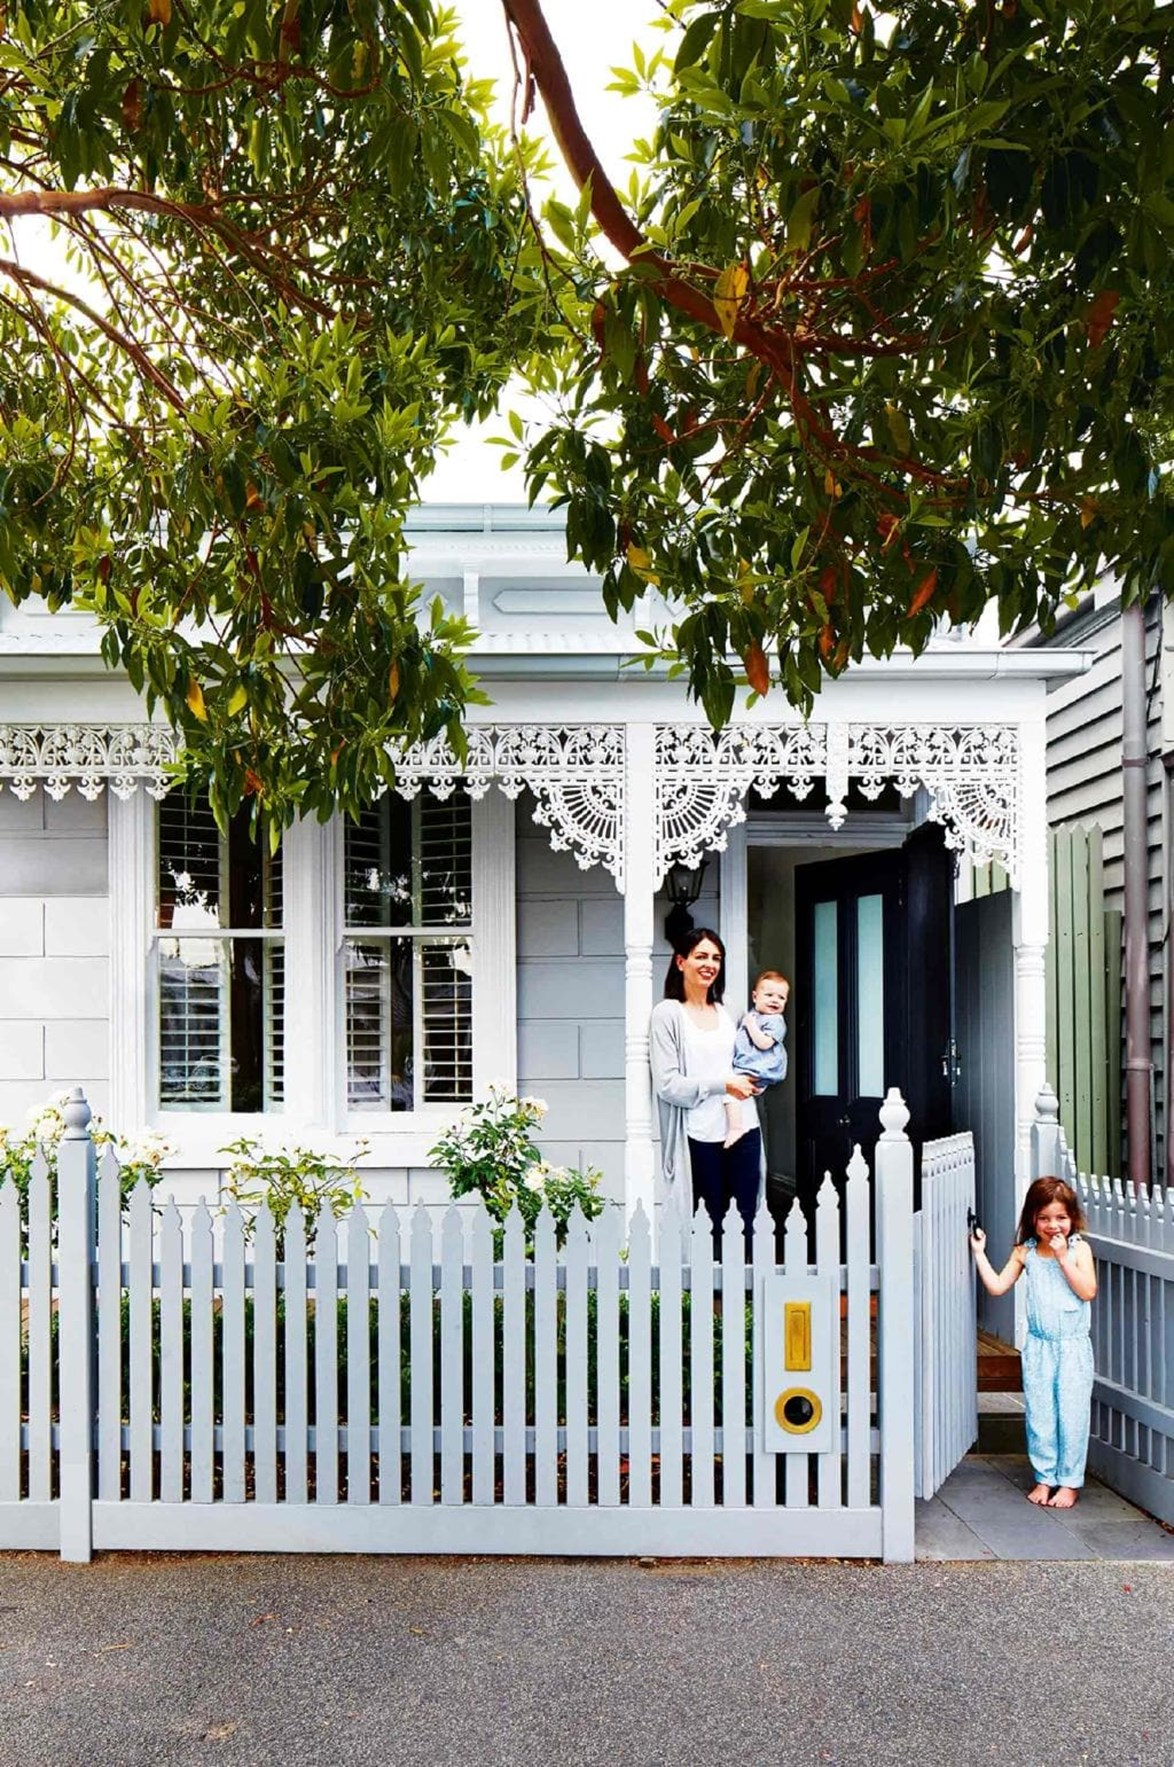 "This Victorian-era cottage with a pretty facade ticked all the boxes for its owners Todd and Rachel. Even though the pair were happy to judge a book by its cover, they found it ticked all the boxes: not only did it have a modern rear extension perfect for their growing family, but it is also positioned on a large corner block near the seaside. Since purchasing it, the pair have given the home a [Scandinavian style makeover](https://www.homestolove.com.au/scandinavian-style-makeover-in-the-heart-of-melbourne-17515|target=""_blank""). *Photo: Armelle Habib / Story: Inside Out*"